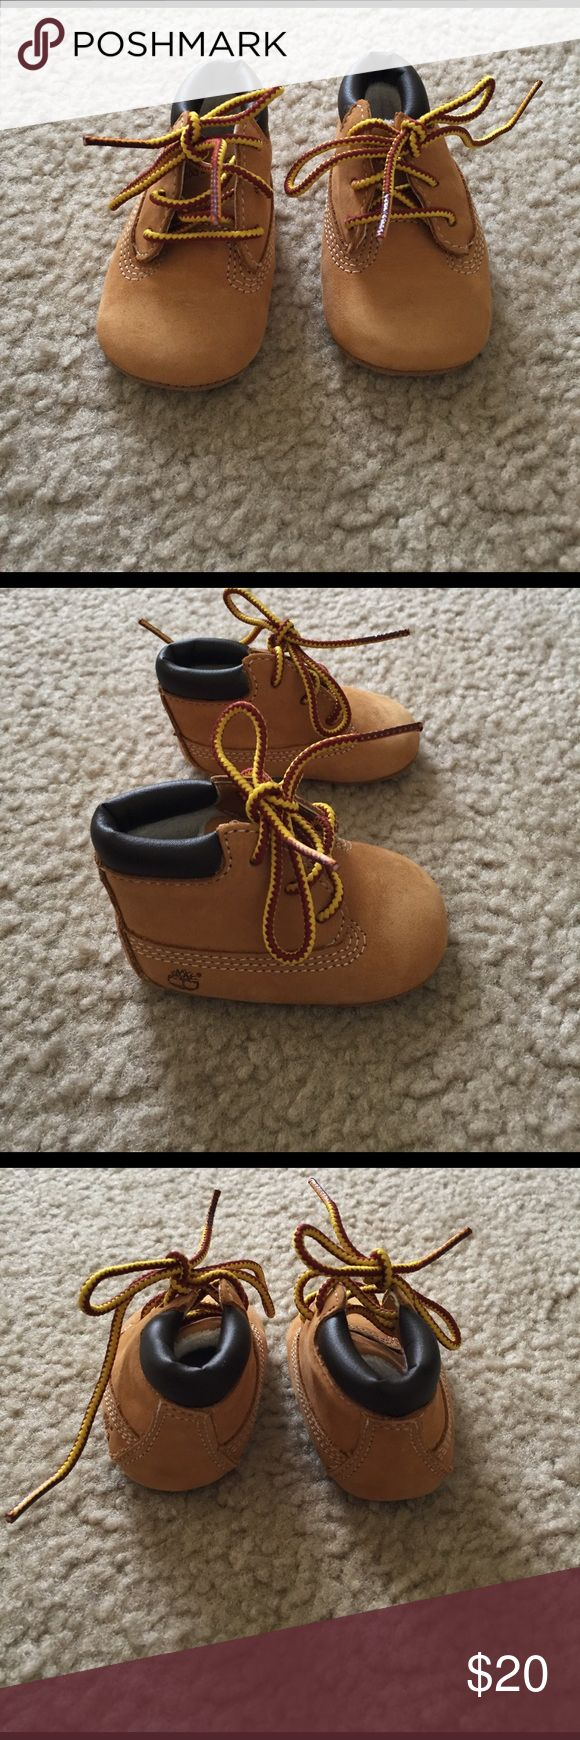 Brand New Infant Timberland Boots Size 0 Brand New Infant Timberland Boots Timberland Shoes Boots